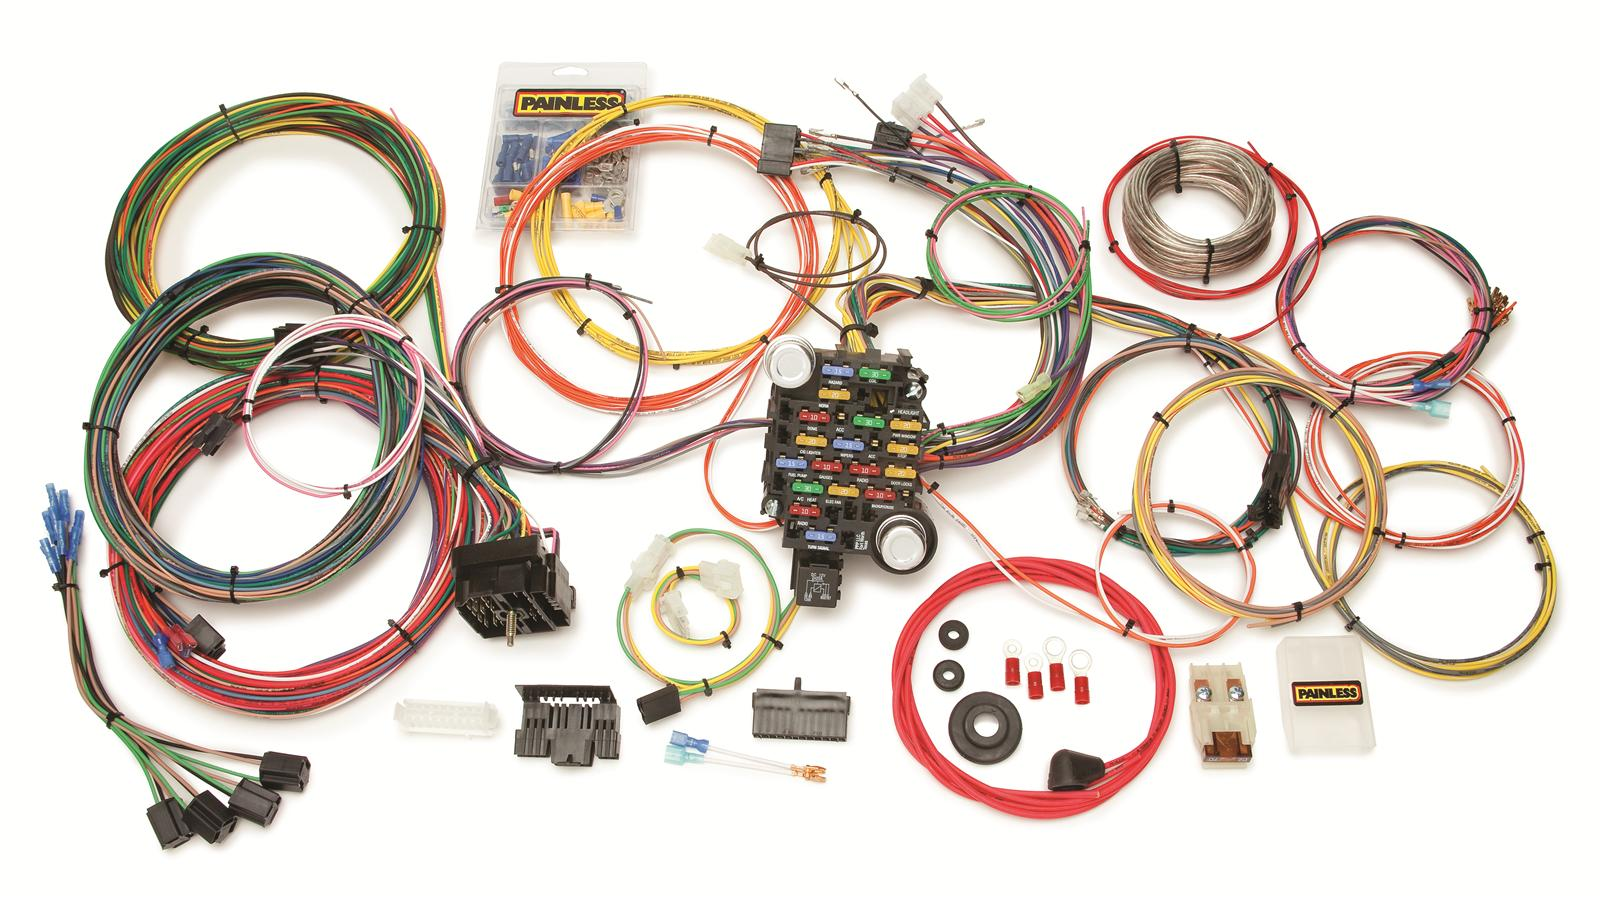 Painless Wiring Harness Another Diagrams Perko 8501 Diagram Performance Gmc Chevy Truck Harnesses 10205 Free Shipping Rh Summitracing Com 10201 30301